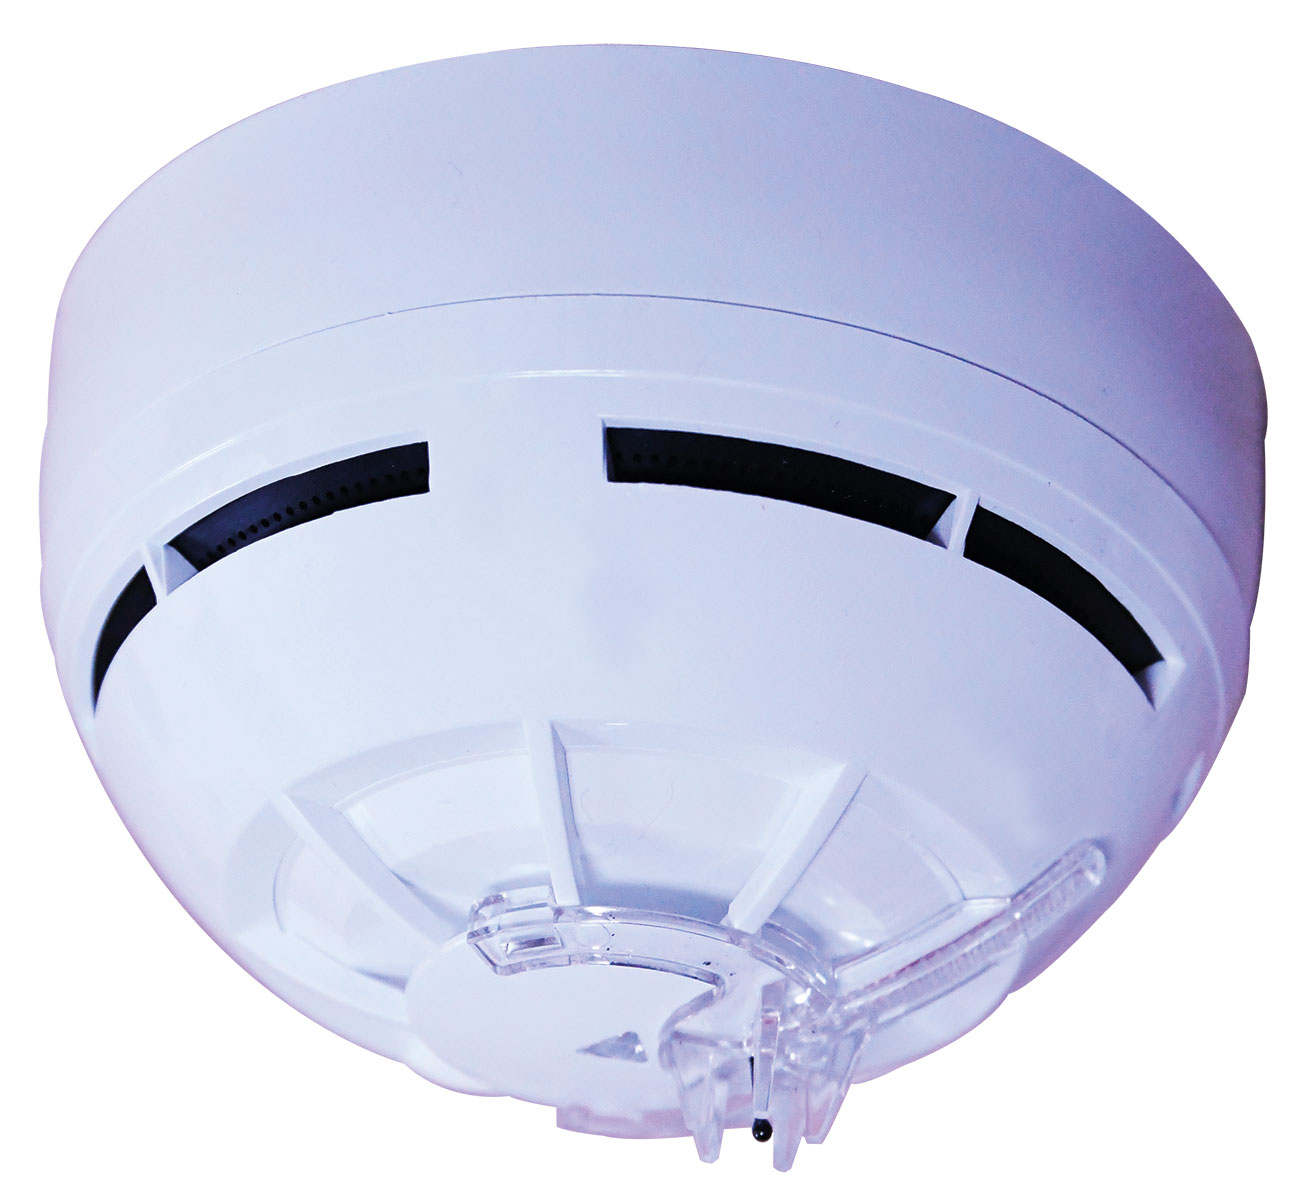 Kentec's wireless detection system supporting easy-to-install and highly-reliable fire safety systems.